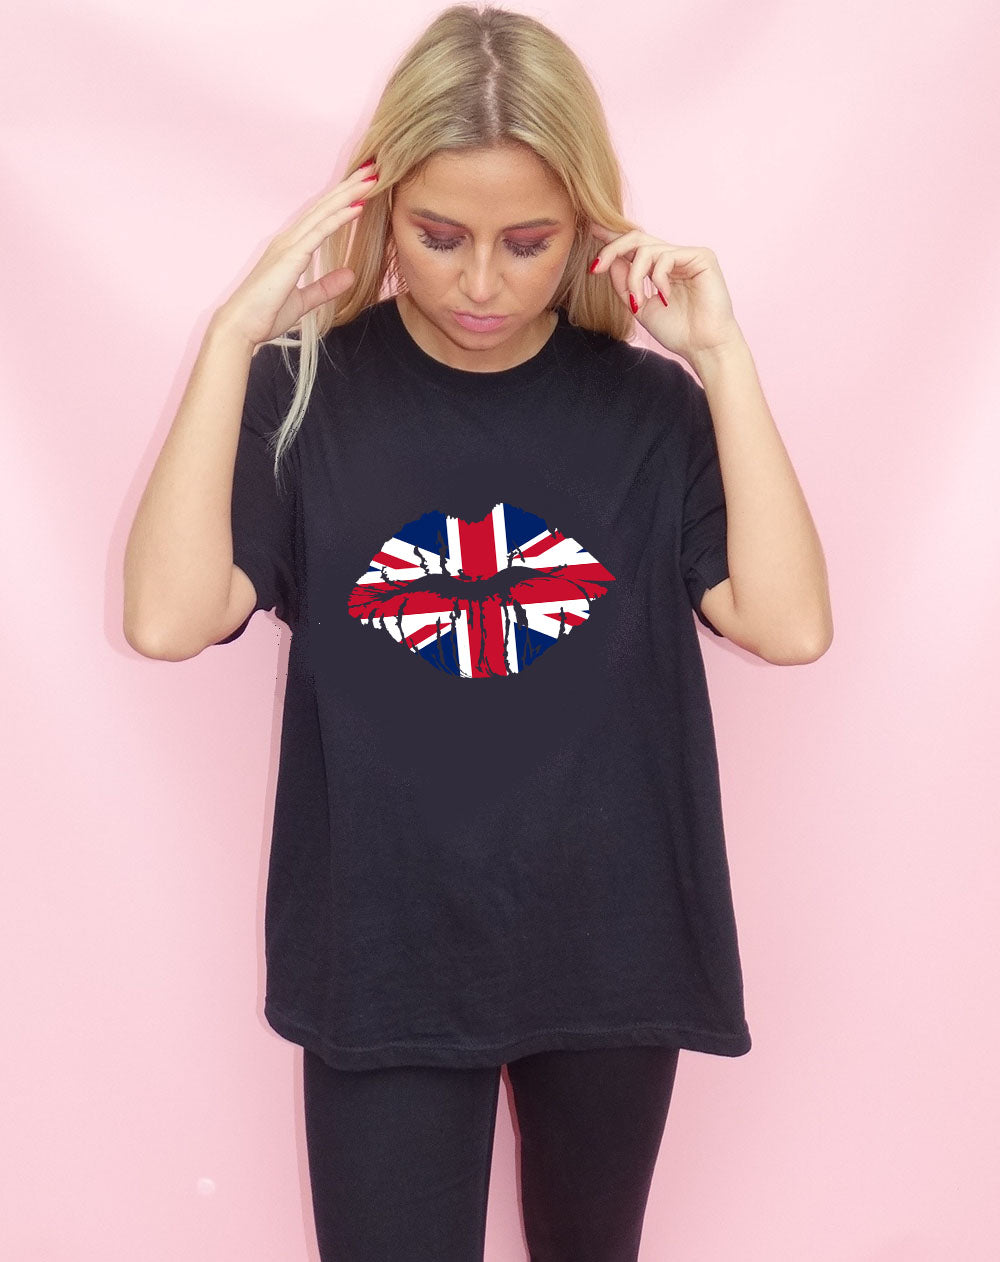 United Kiss Tshirt in Black